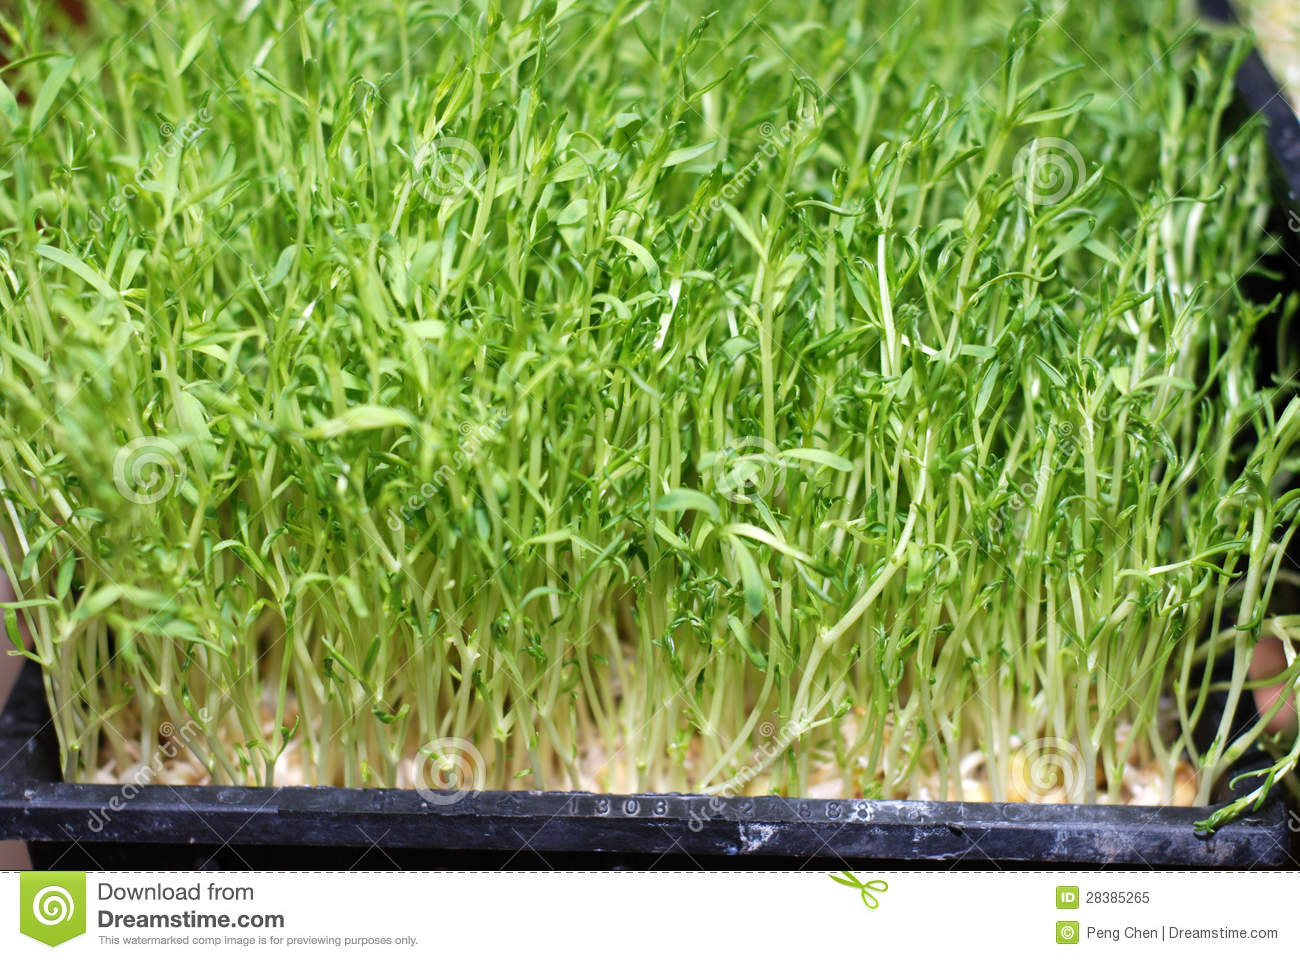 Green Food Mung Bean Sprout Royalty Free Stock Photo - Image: 28385265